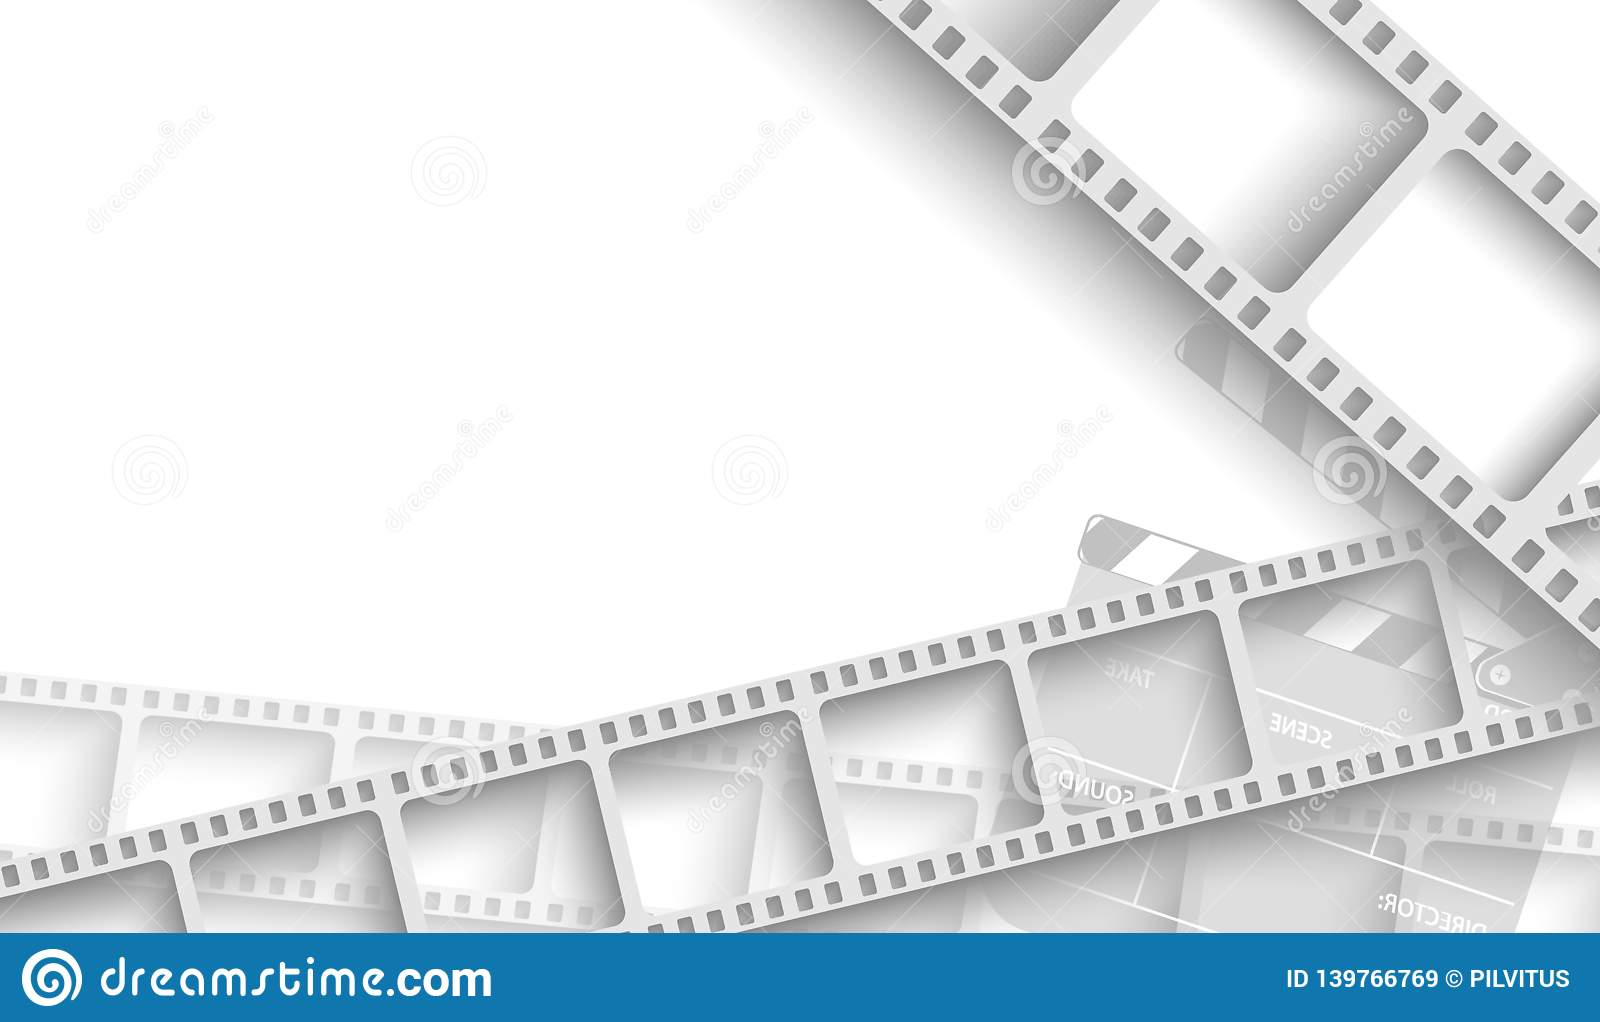 abstract background with white film strip frame and clapper board isolated on white background design template cinema with space stock vector illustration of festival film 139766769 https www dreamstime com abstract background white film strip frame clapper board isolated design template cinema space your text movie image139766769